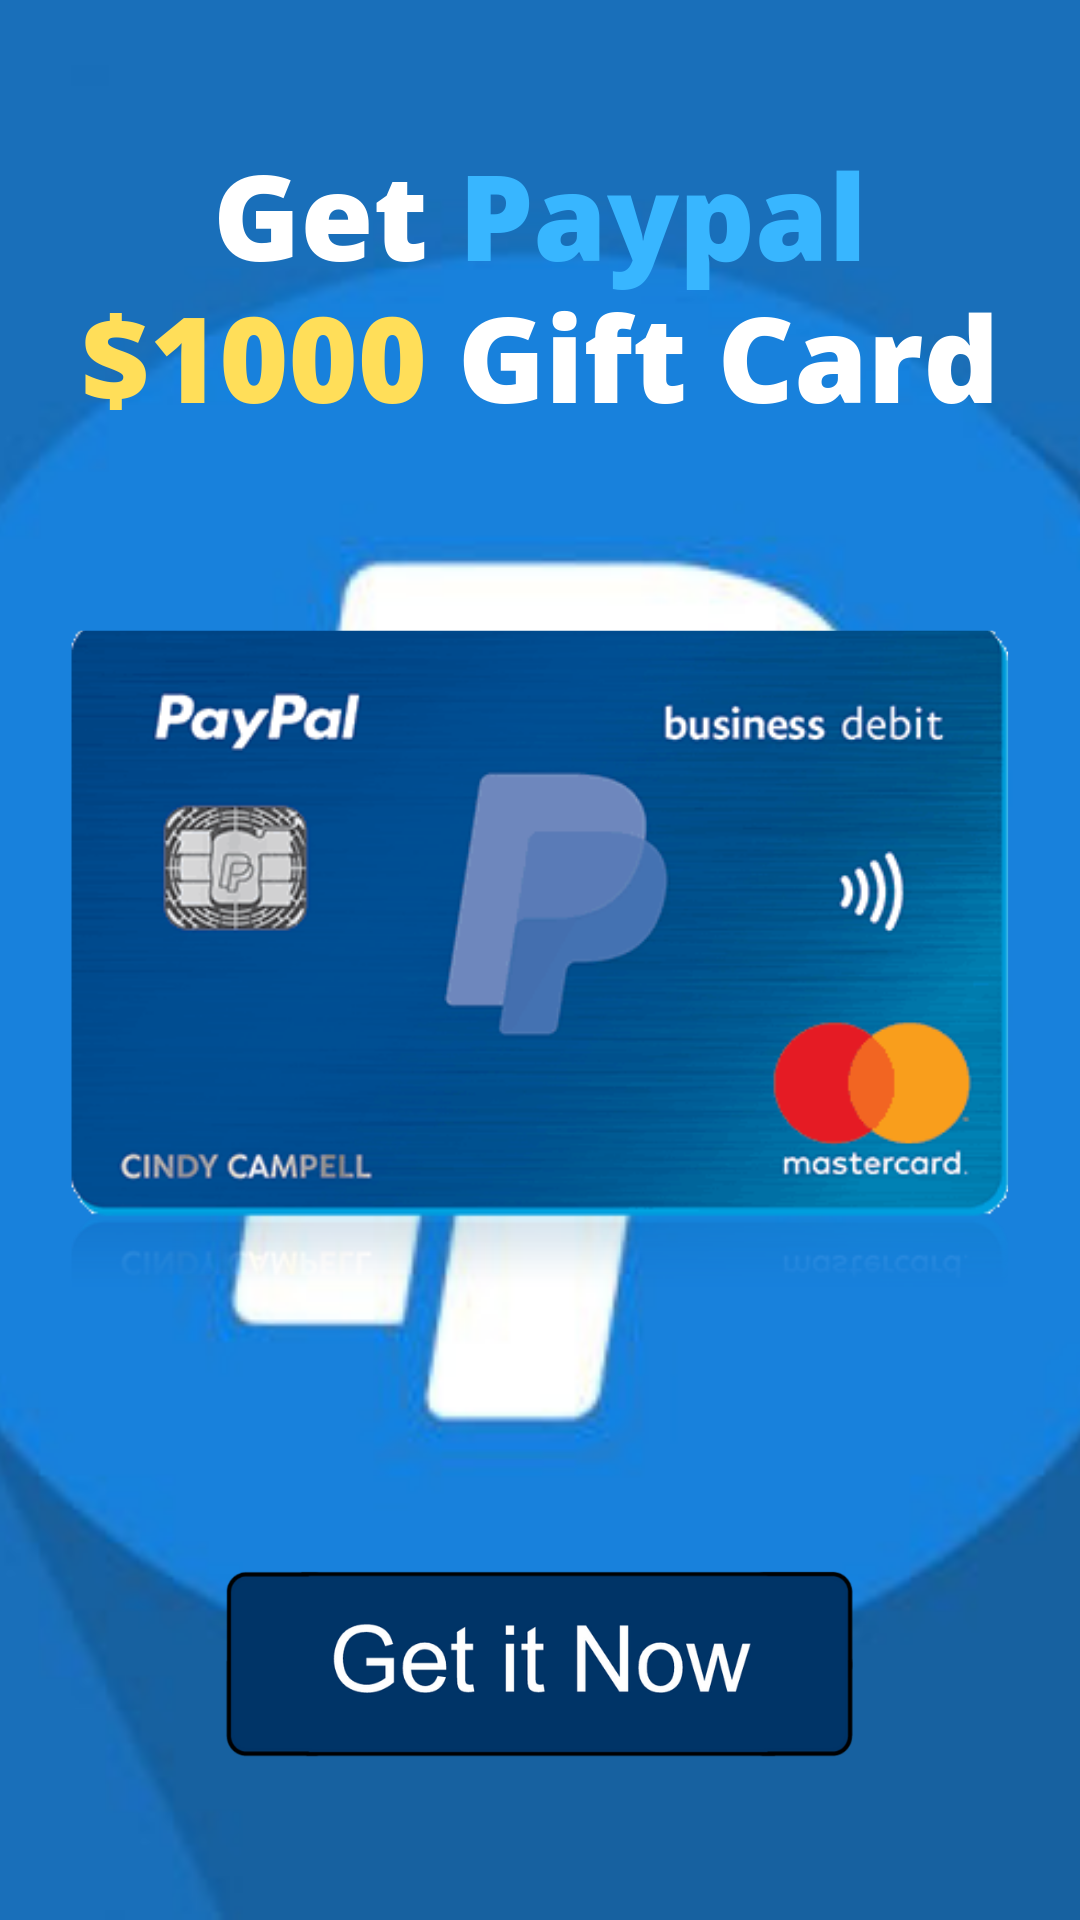 WIN A FREE PayPal $1000 Gift Card